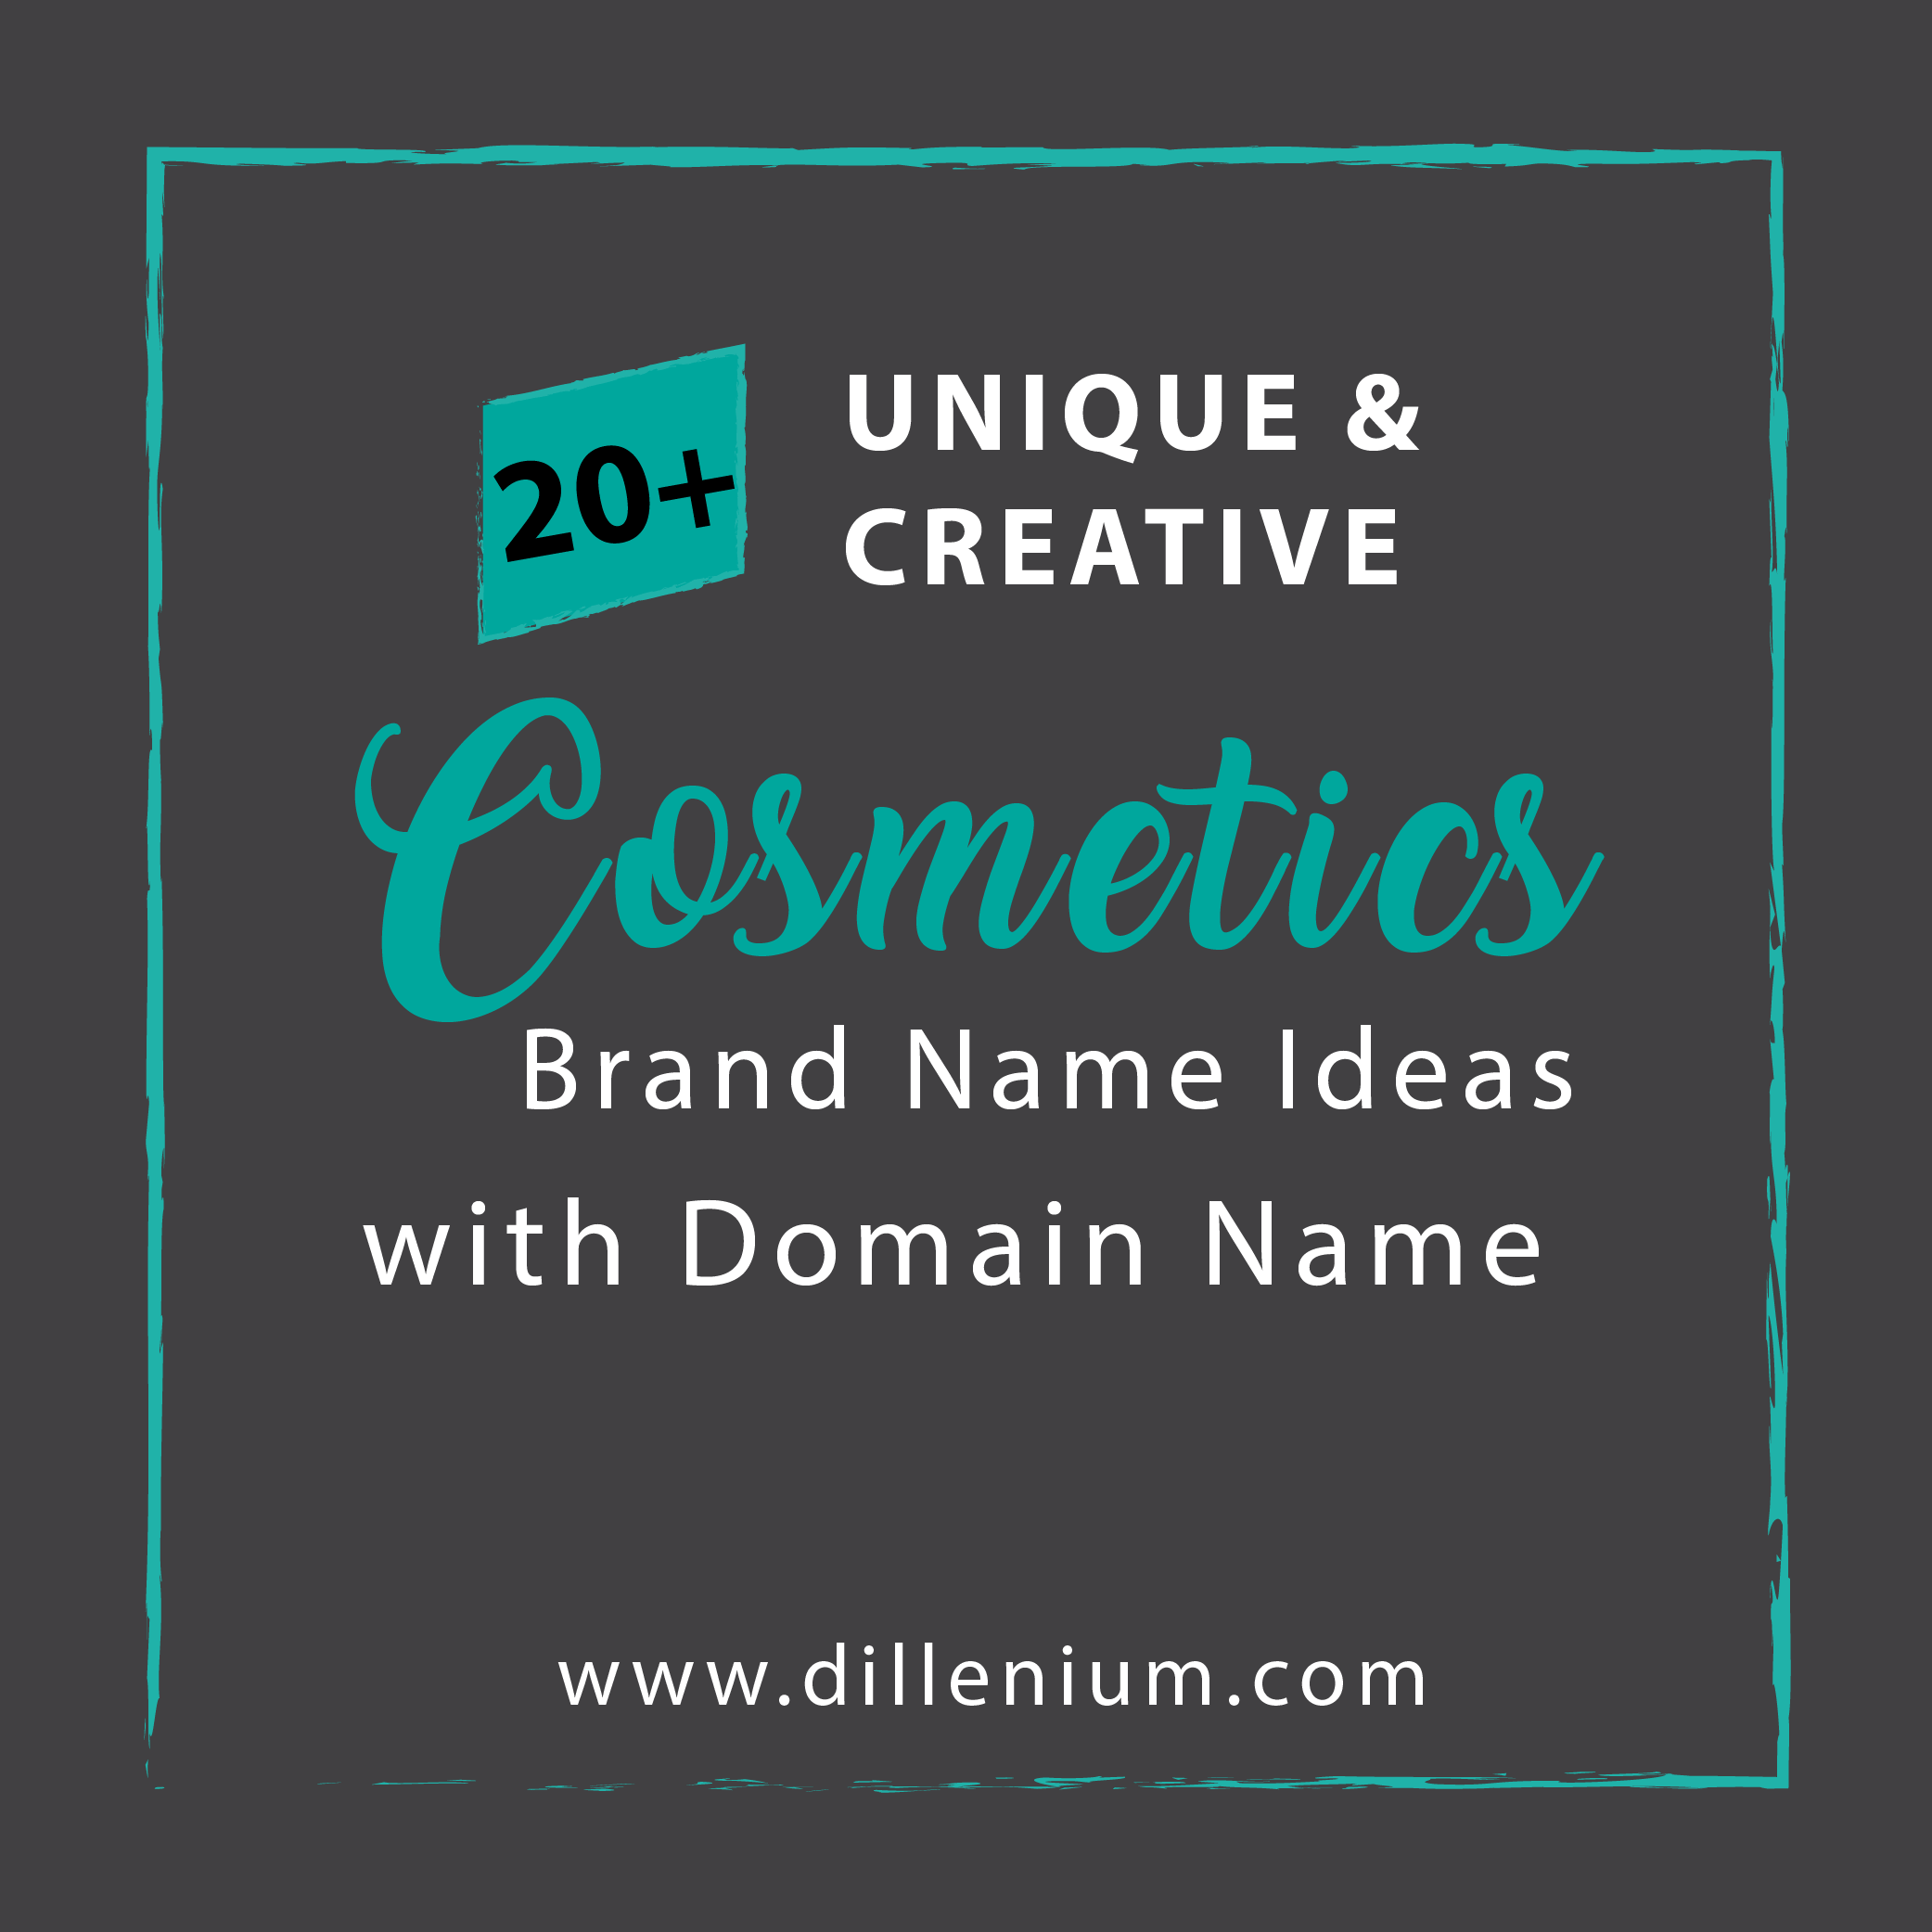 20+ Cosmetic Brand Name Ideas with Available Domain Name